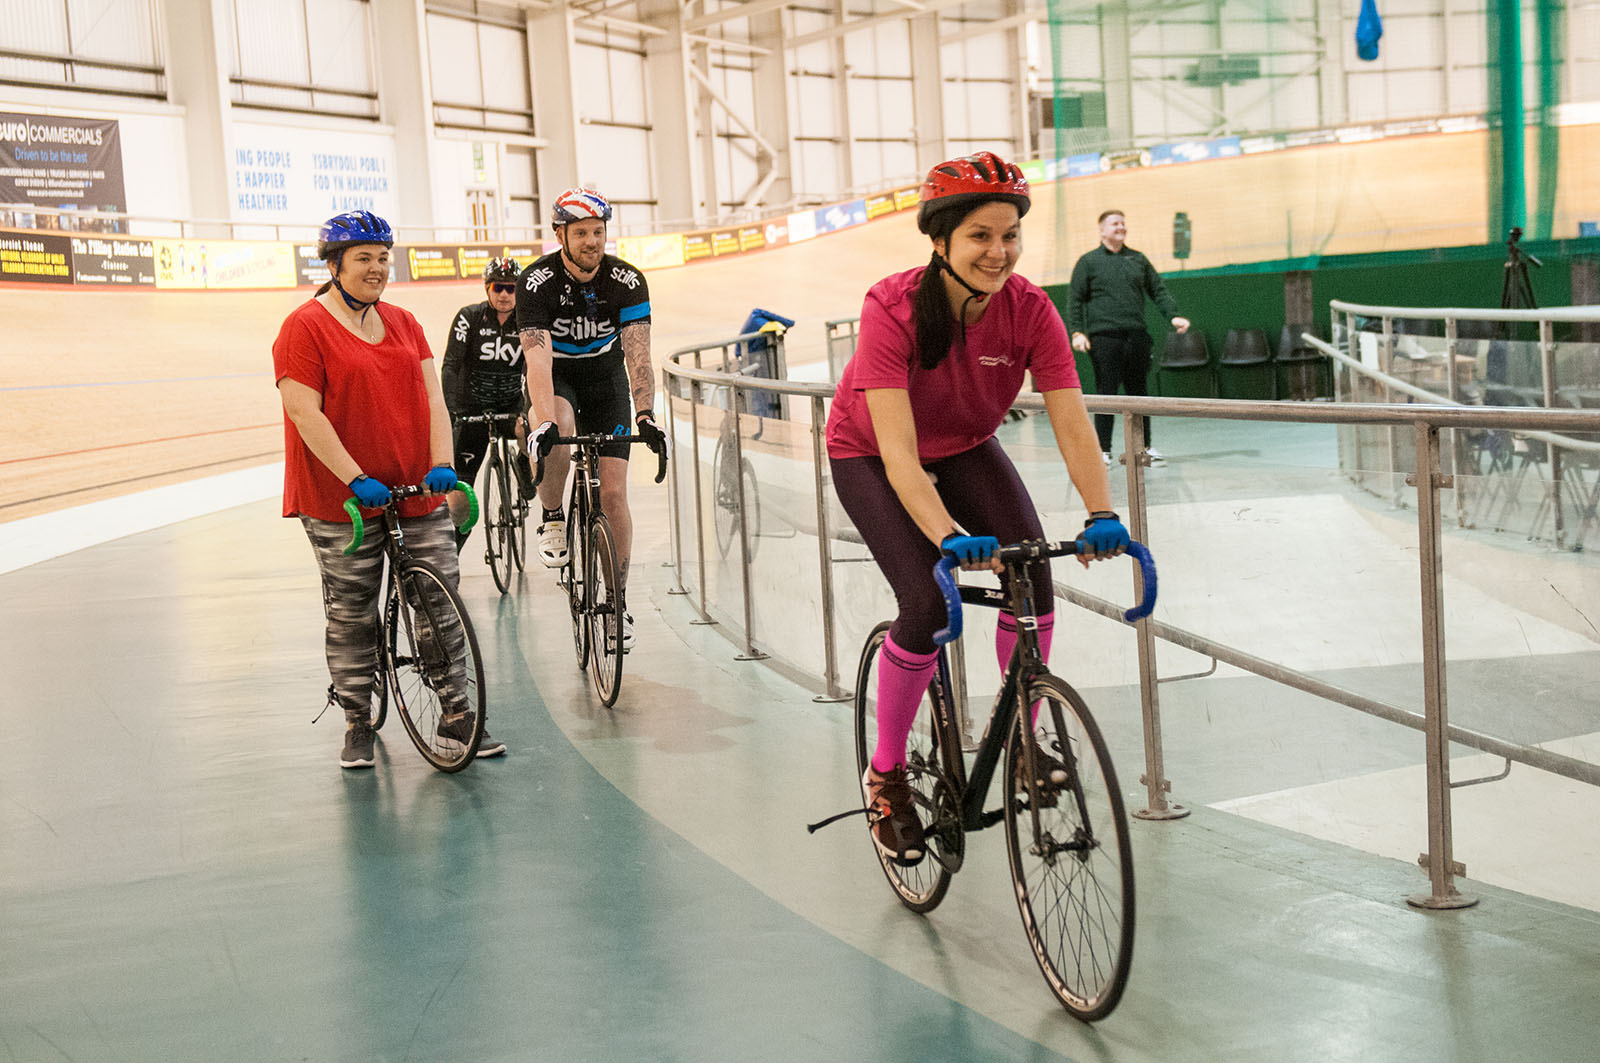 Lady in pink riding a track bike